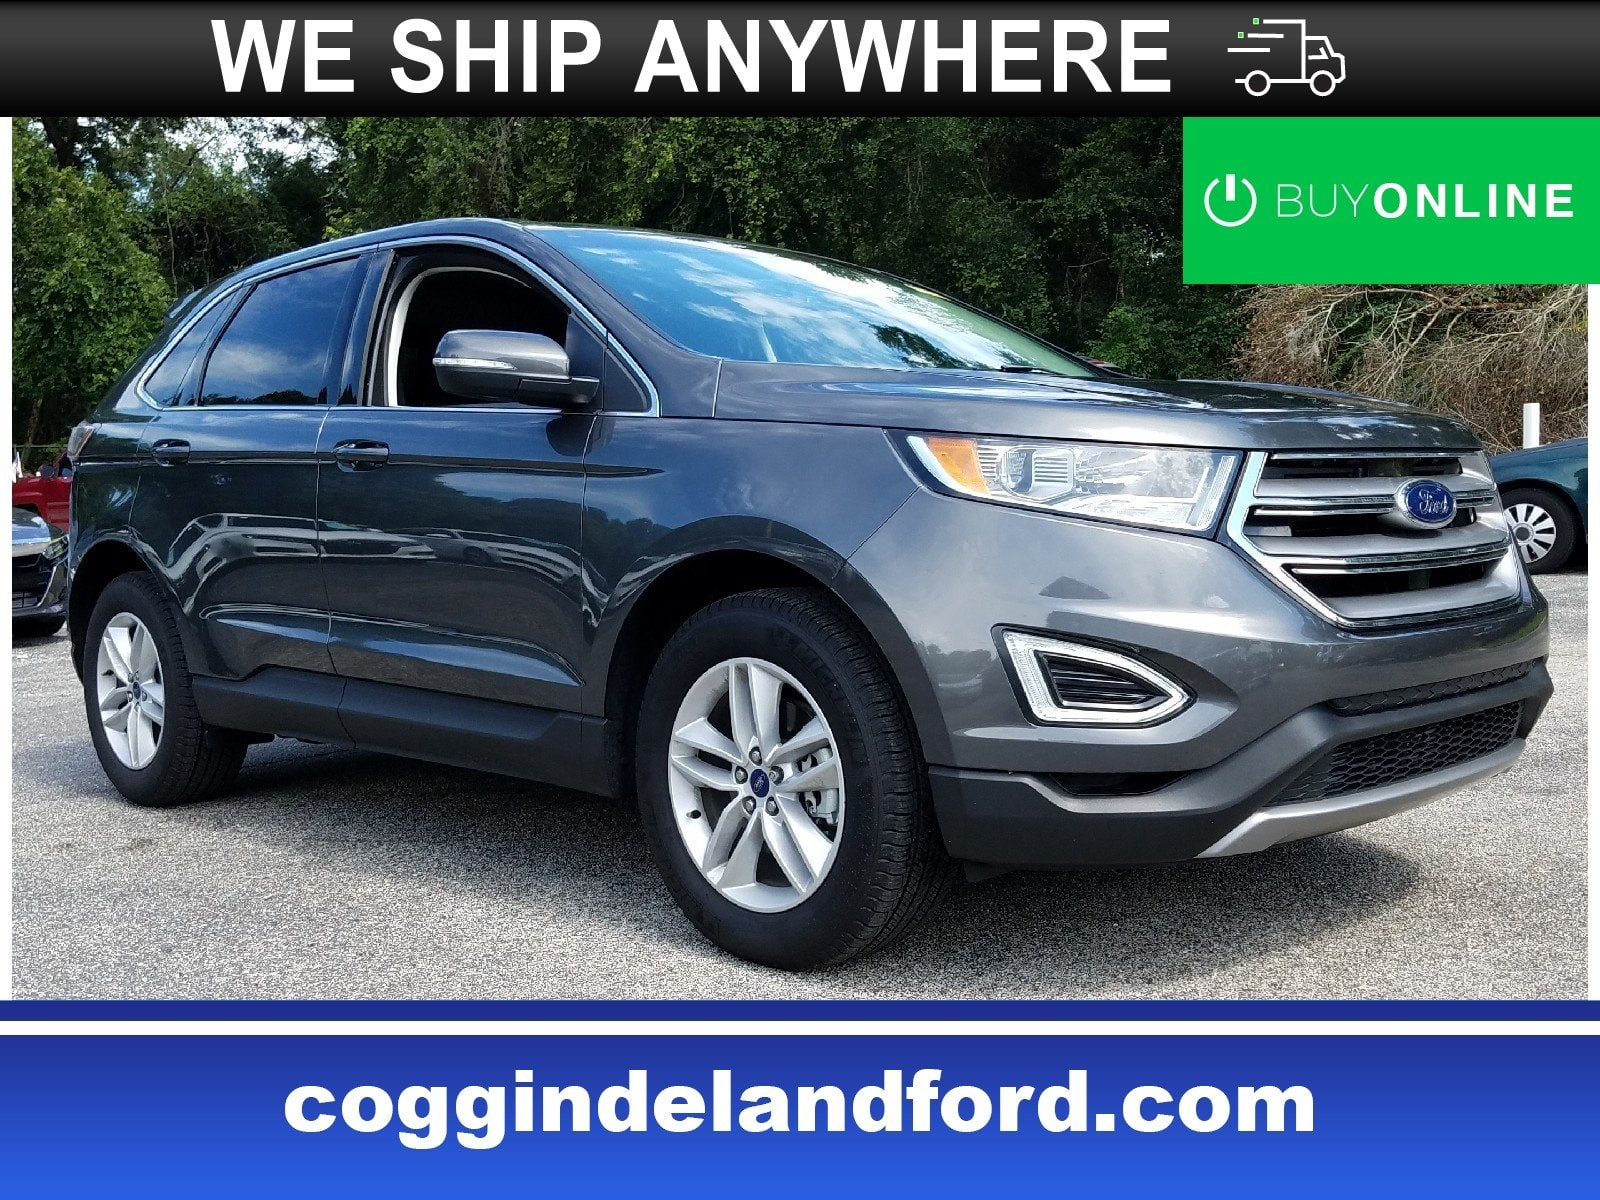 Ford Used Cars Lovely Used Car Specials In Deland